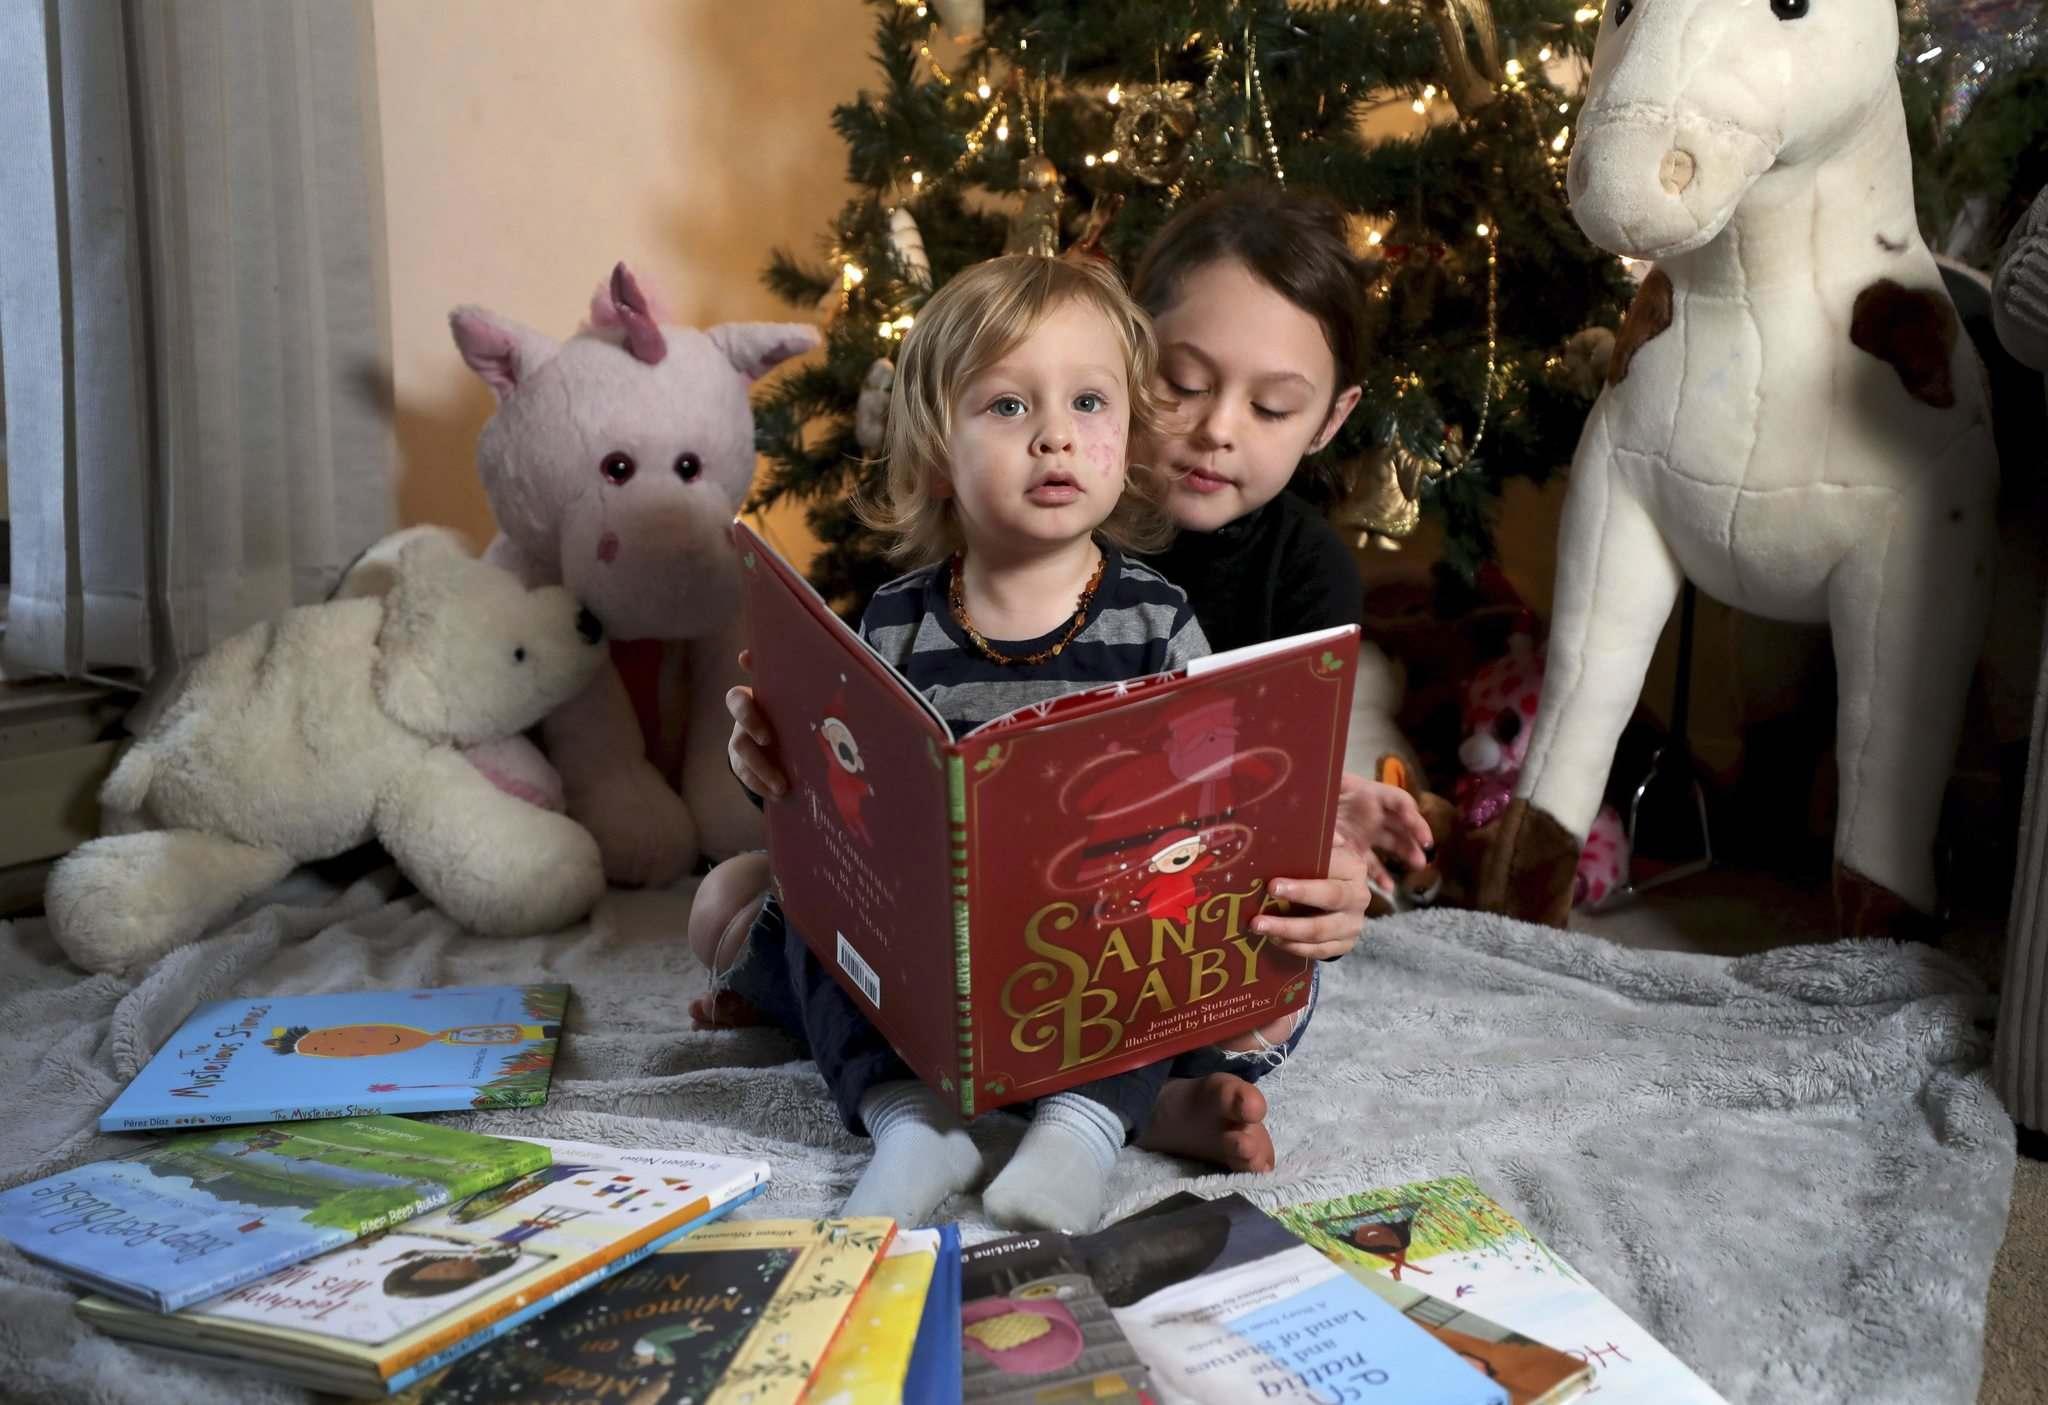 RUTH BONNEVILLE / WINNIPEG FREE PRESS</p><p>Winter Wright (8) and her little brother Gabriel (18 months) read Santa Baby, written by Jonathan Stutzman and illustrated by Heather Fox, under their Christmas tree last week.</p>